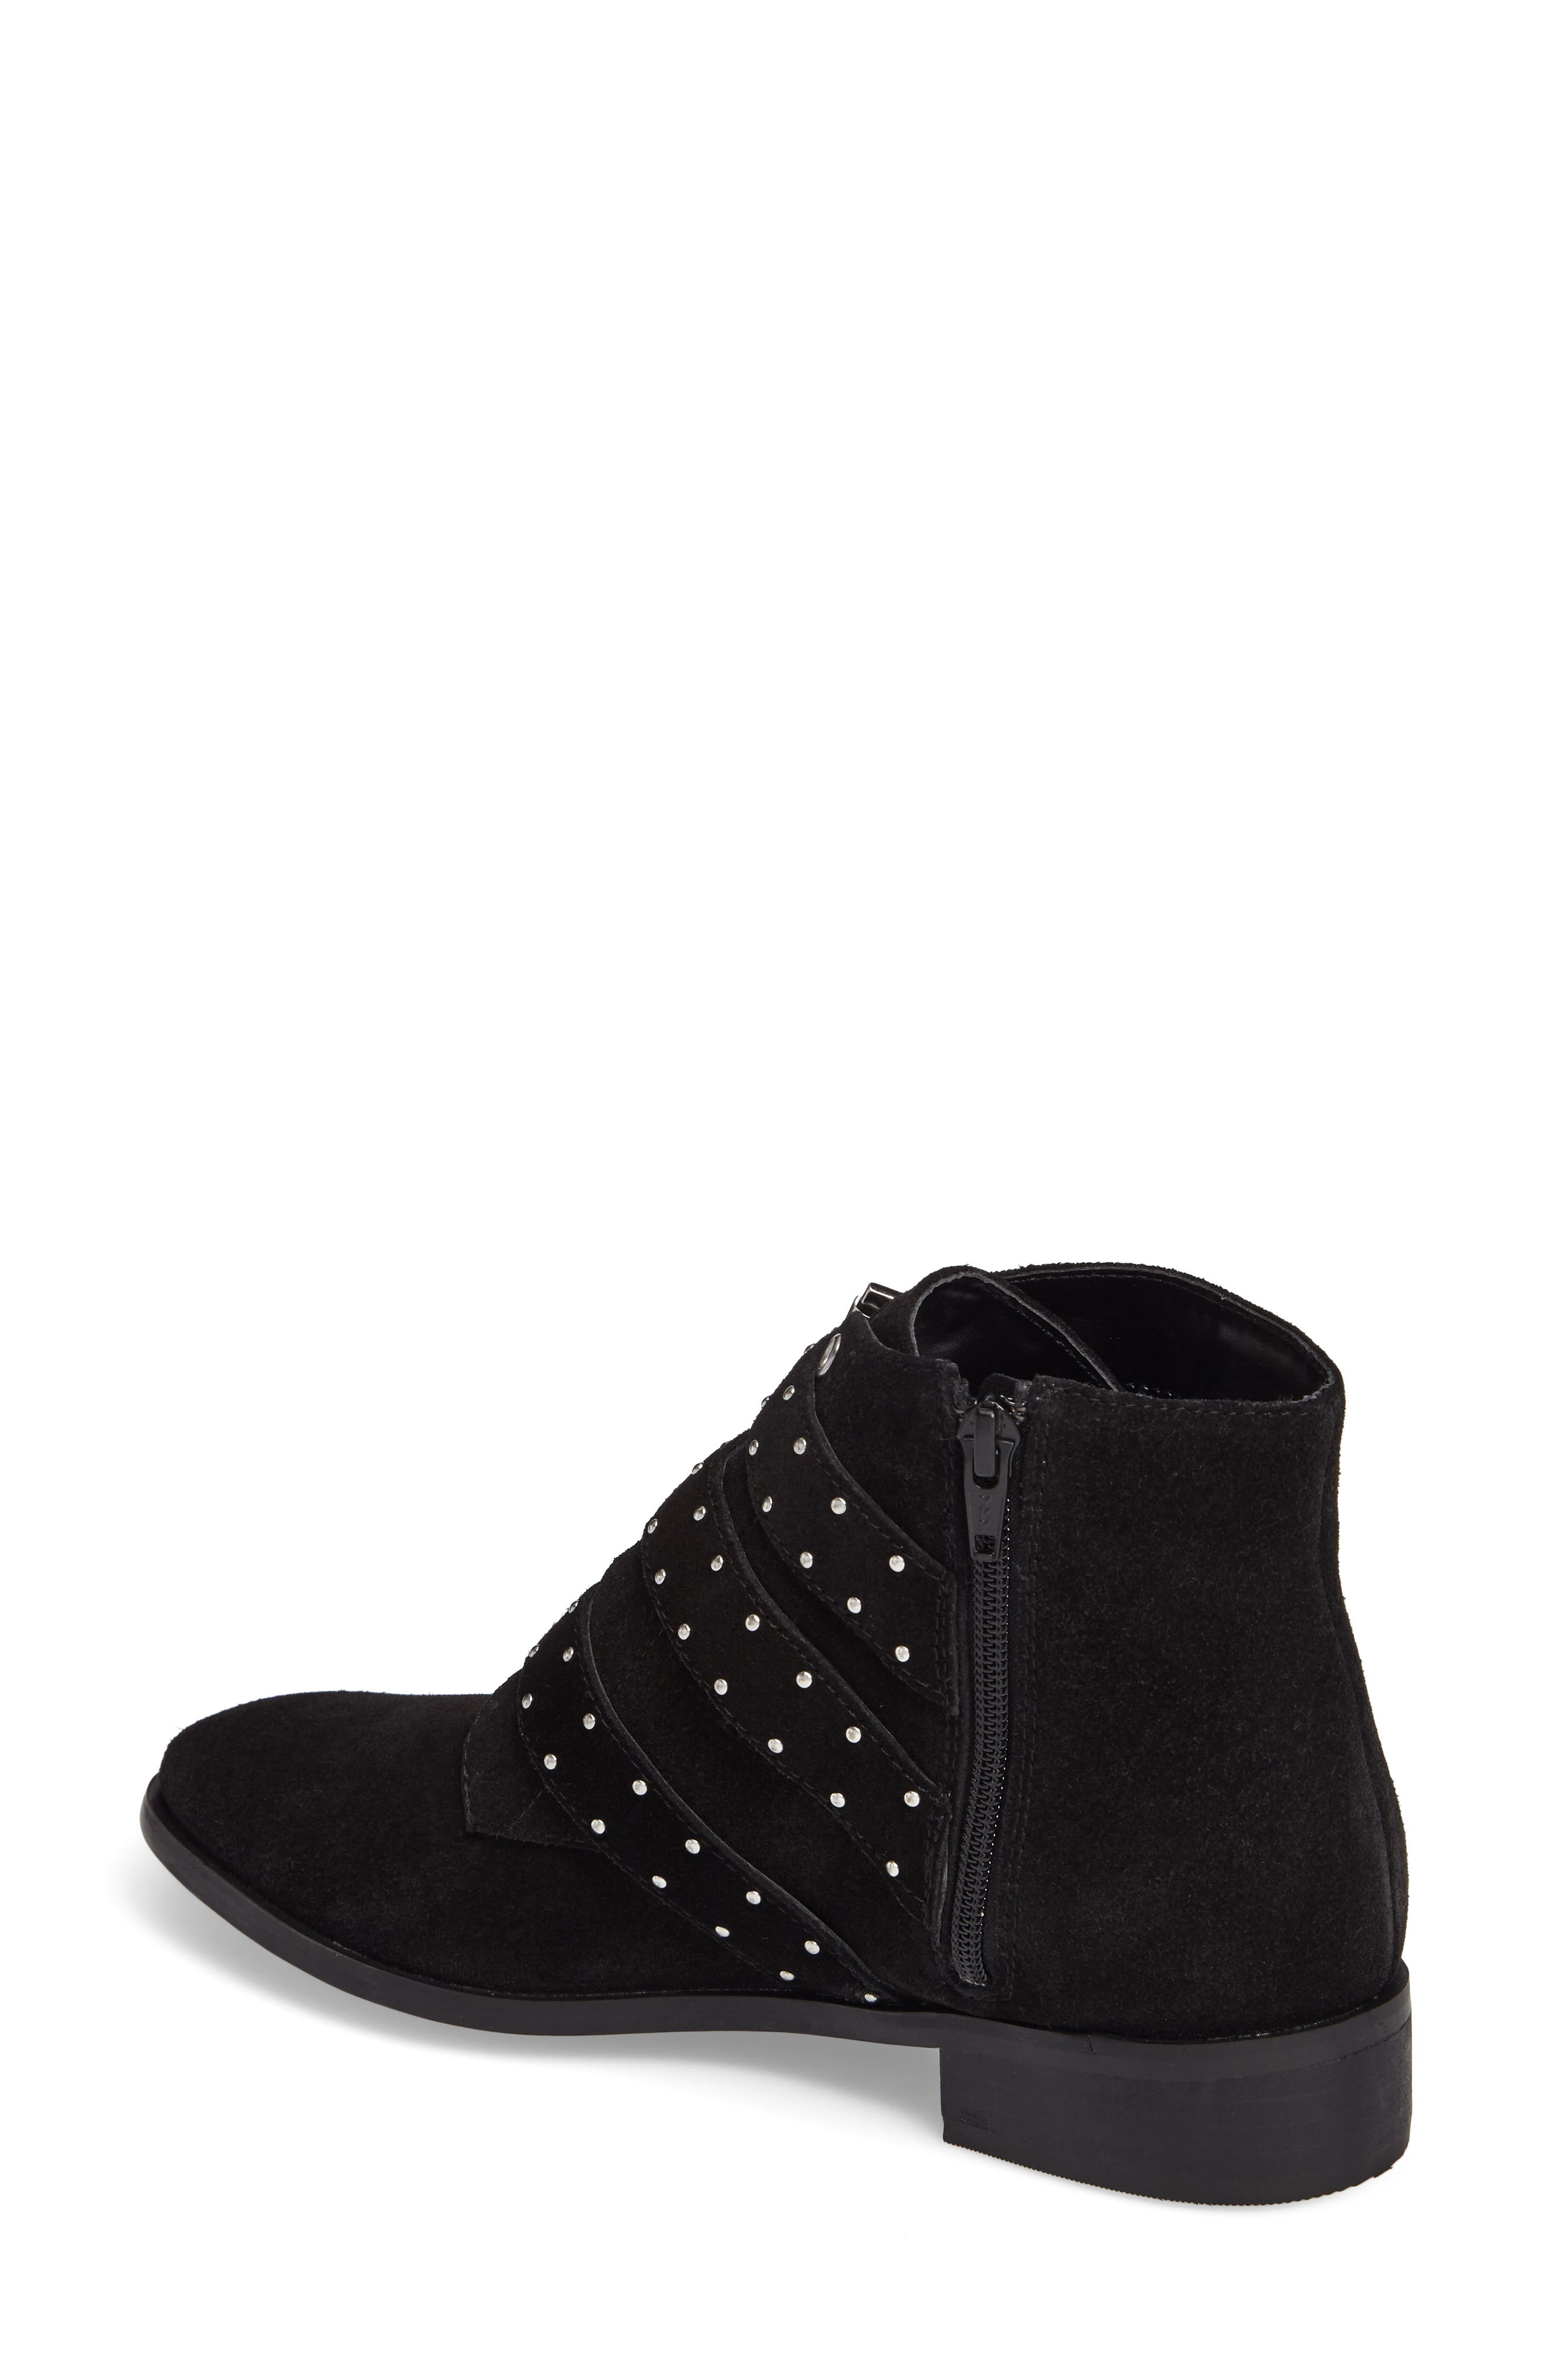 Krown Studded Bootie,                             Alternate thumbnail 3, color,